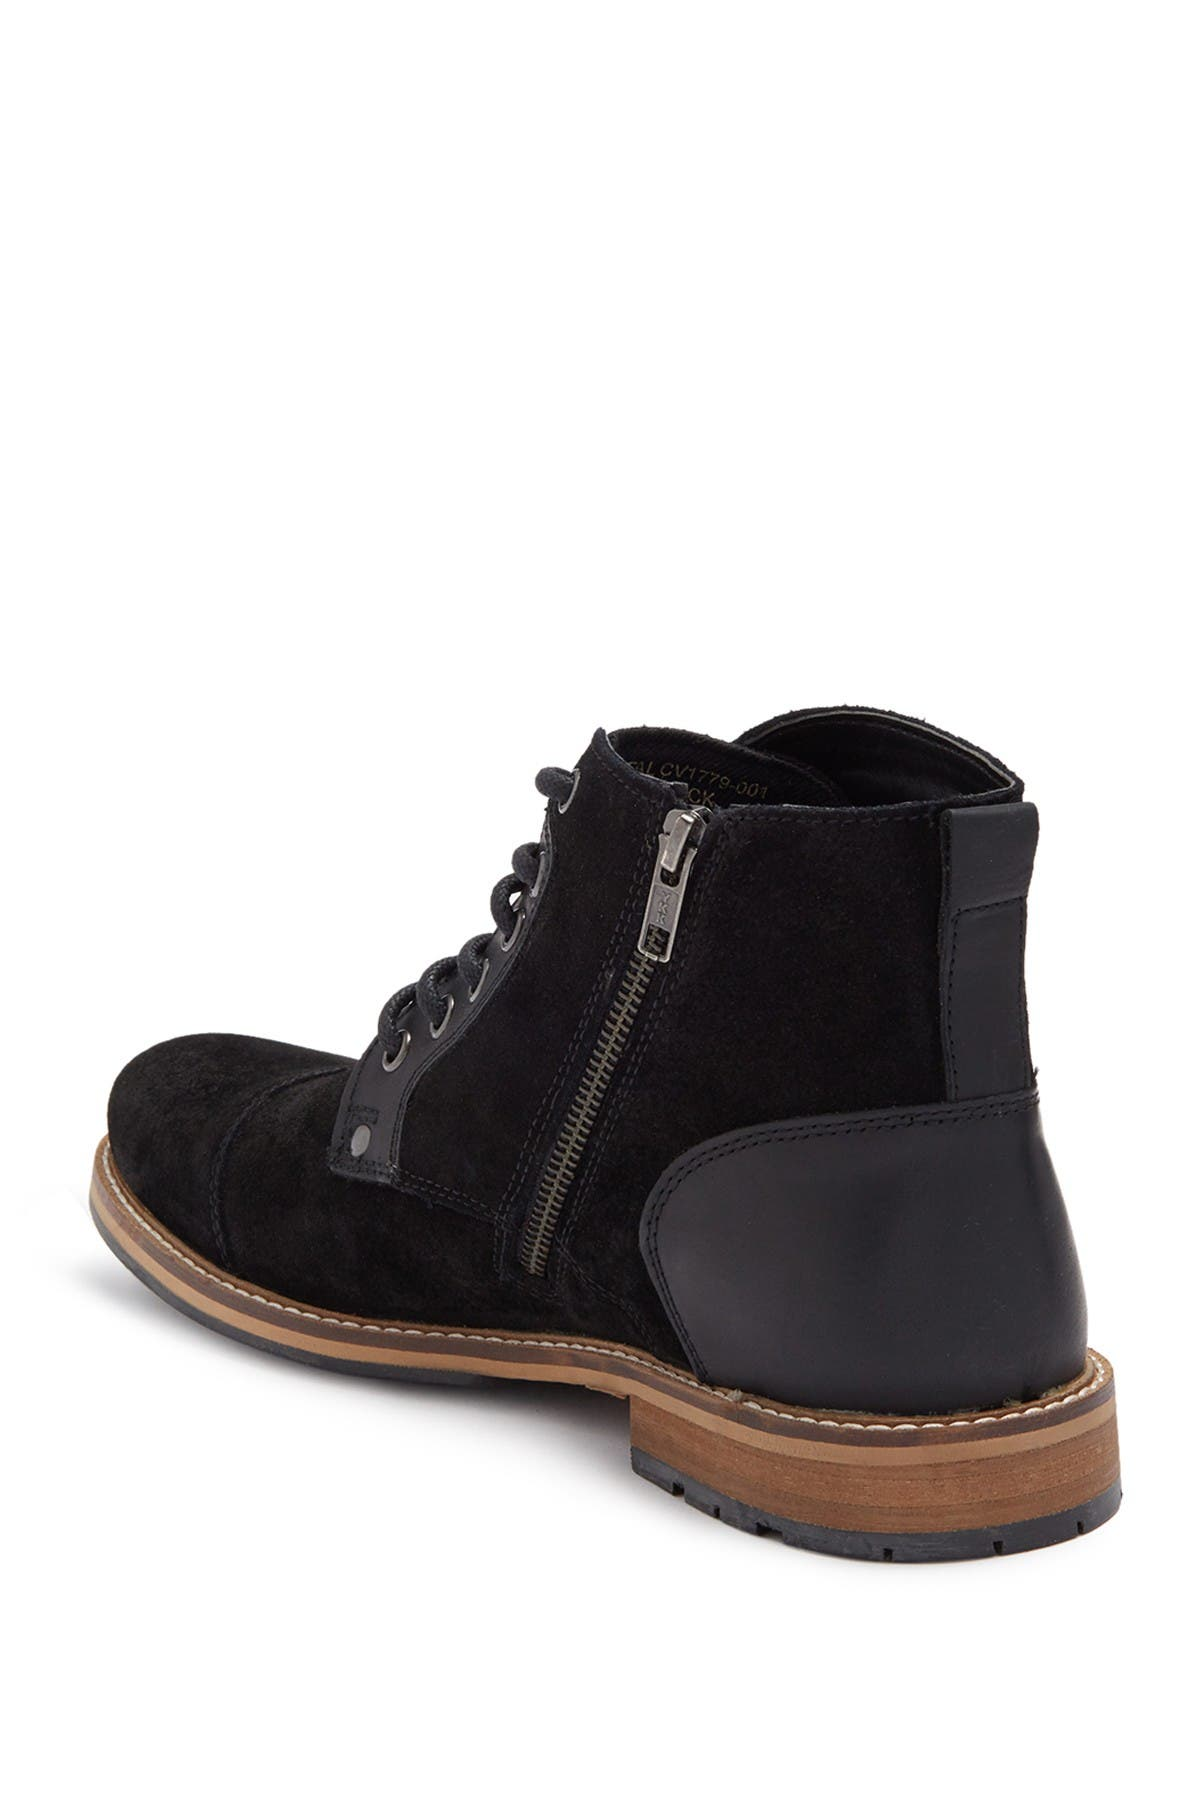 Image of Crevo Neal Leather Trim Lace-Up Boot